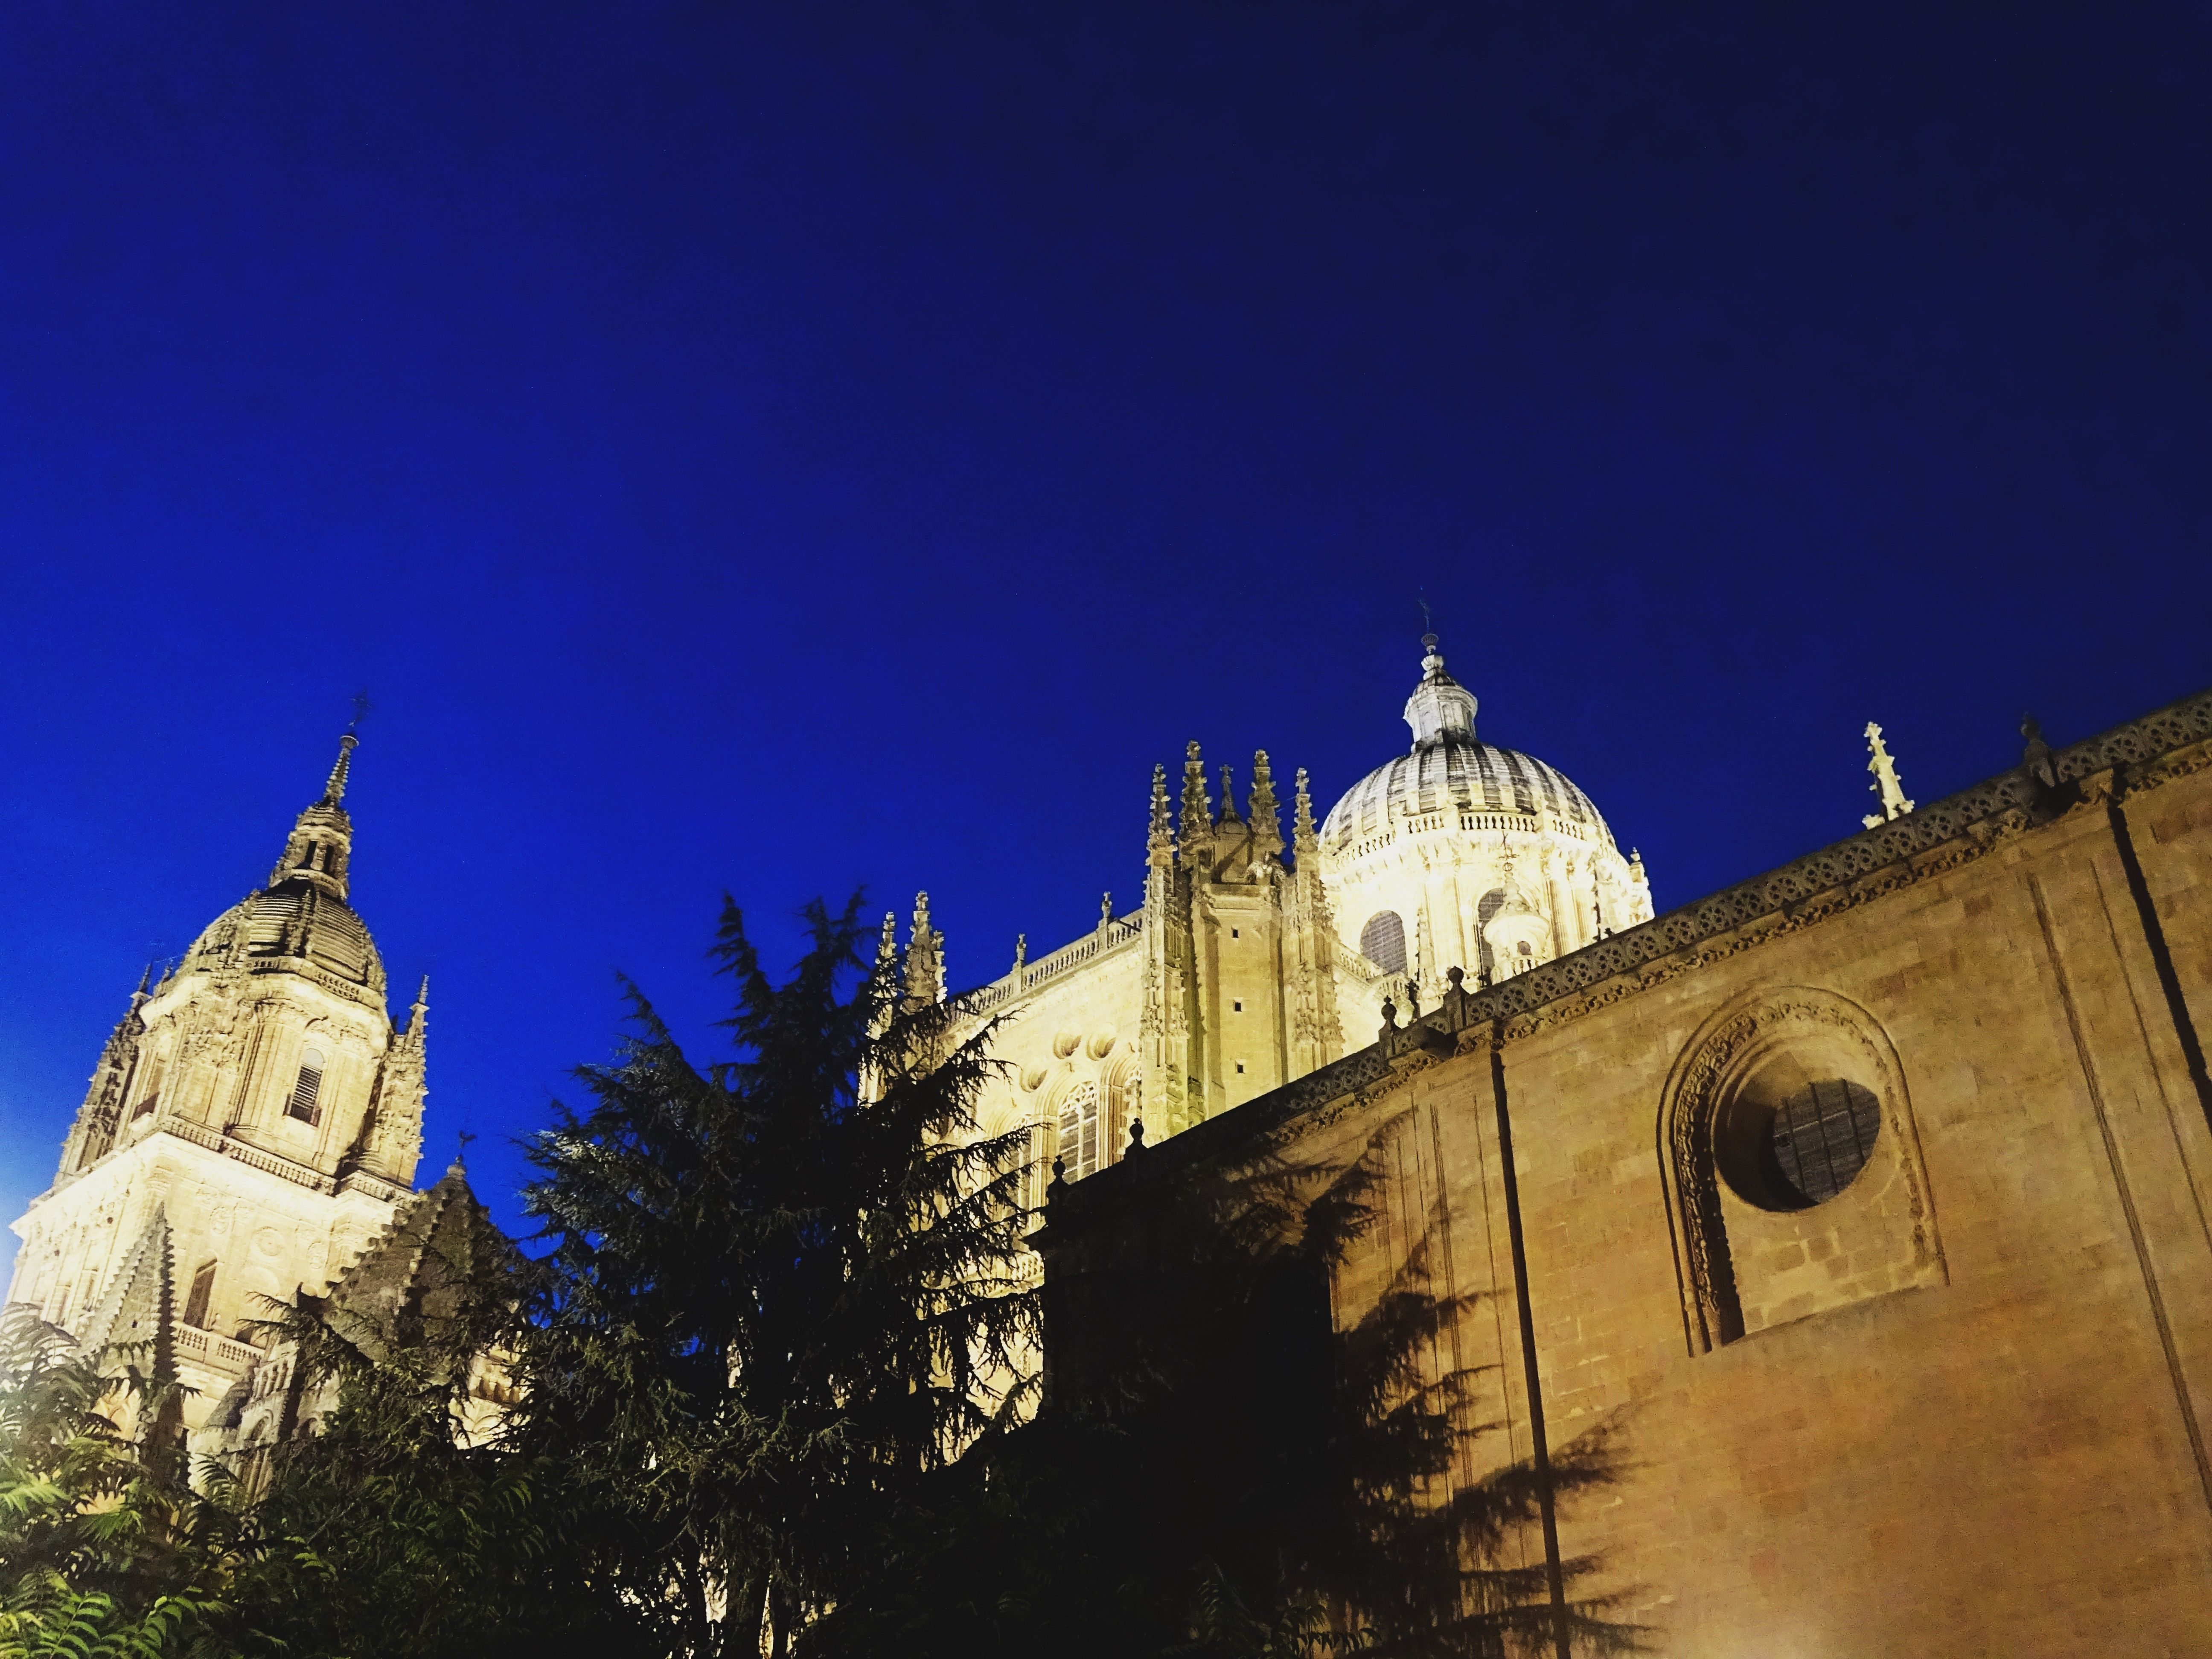 Old. Cathedral. Salamanca. Trees. Spain. South. Trip. Travel, Traveling. Night. Photograph. Art | Instagram: cbriannem